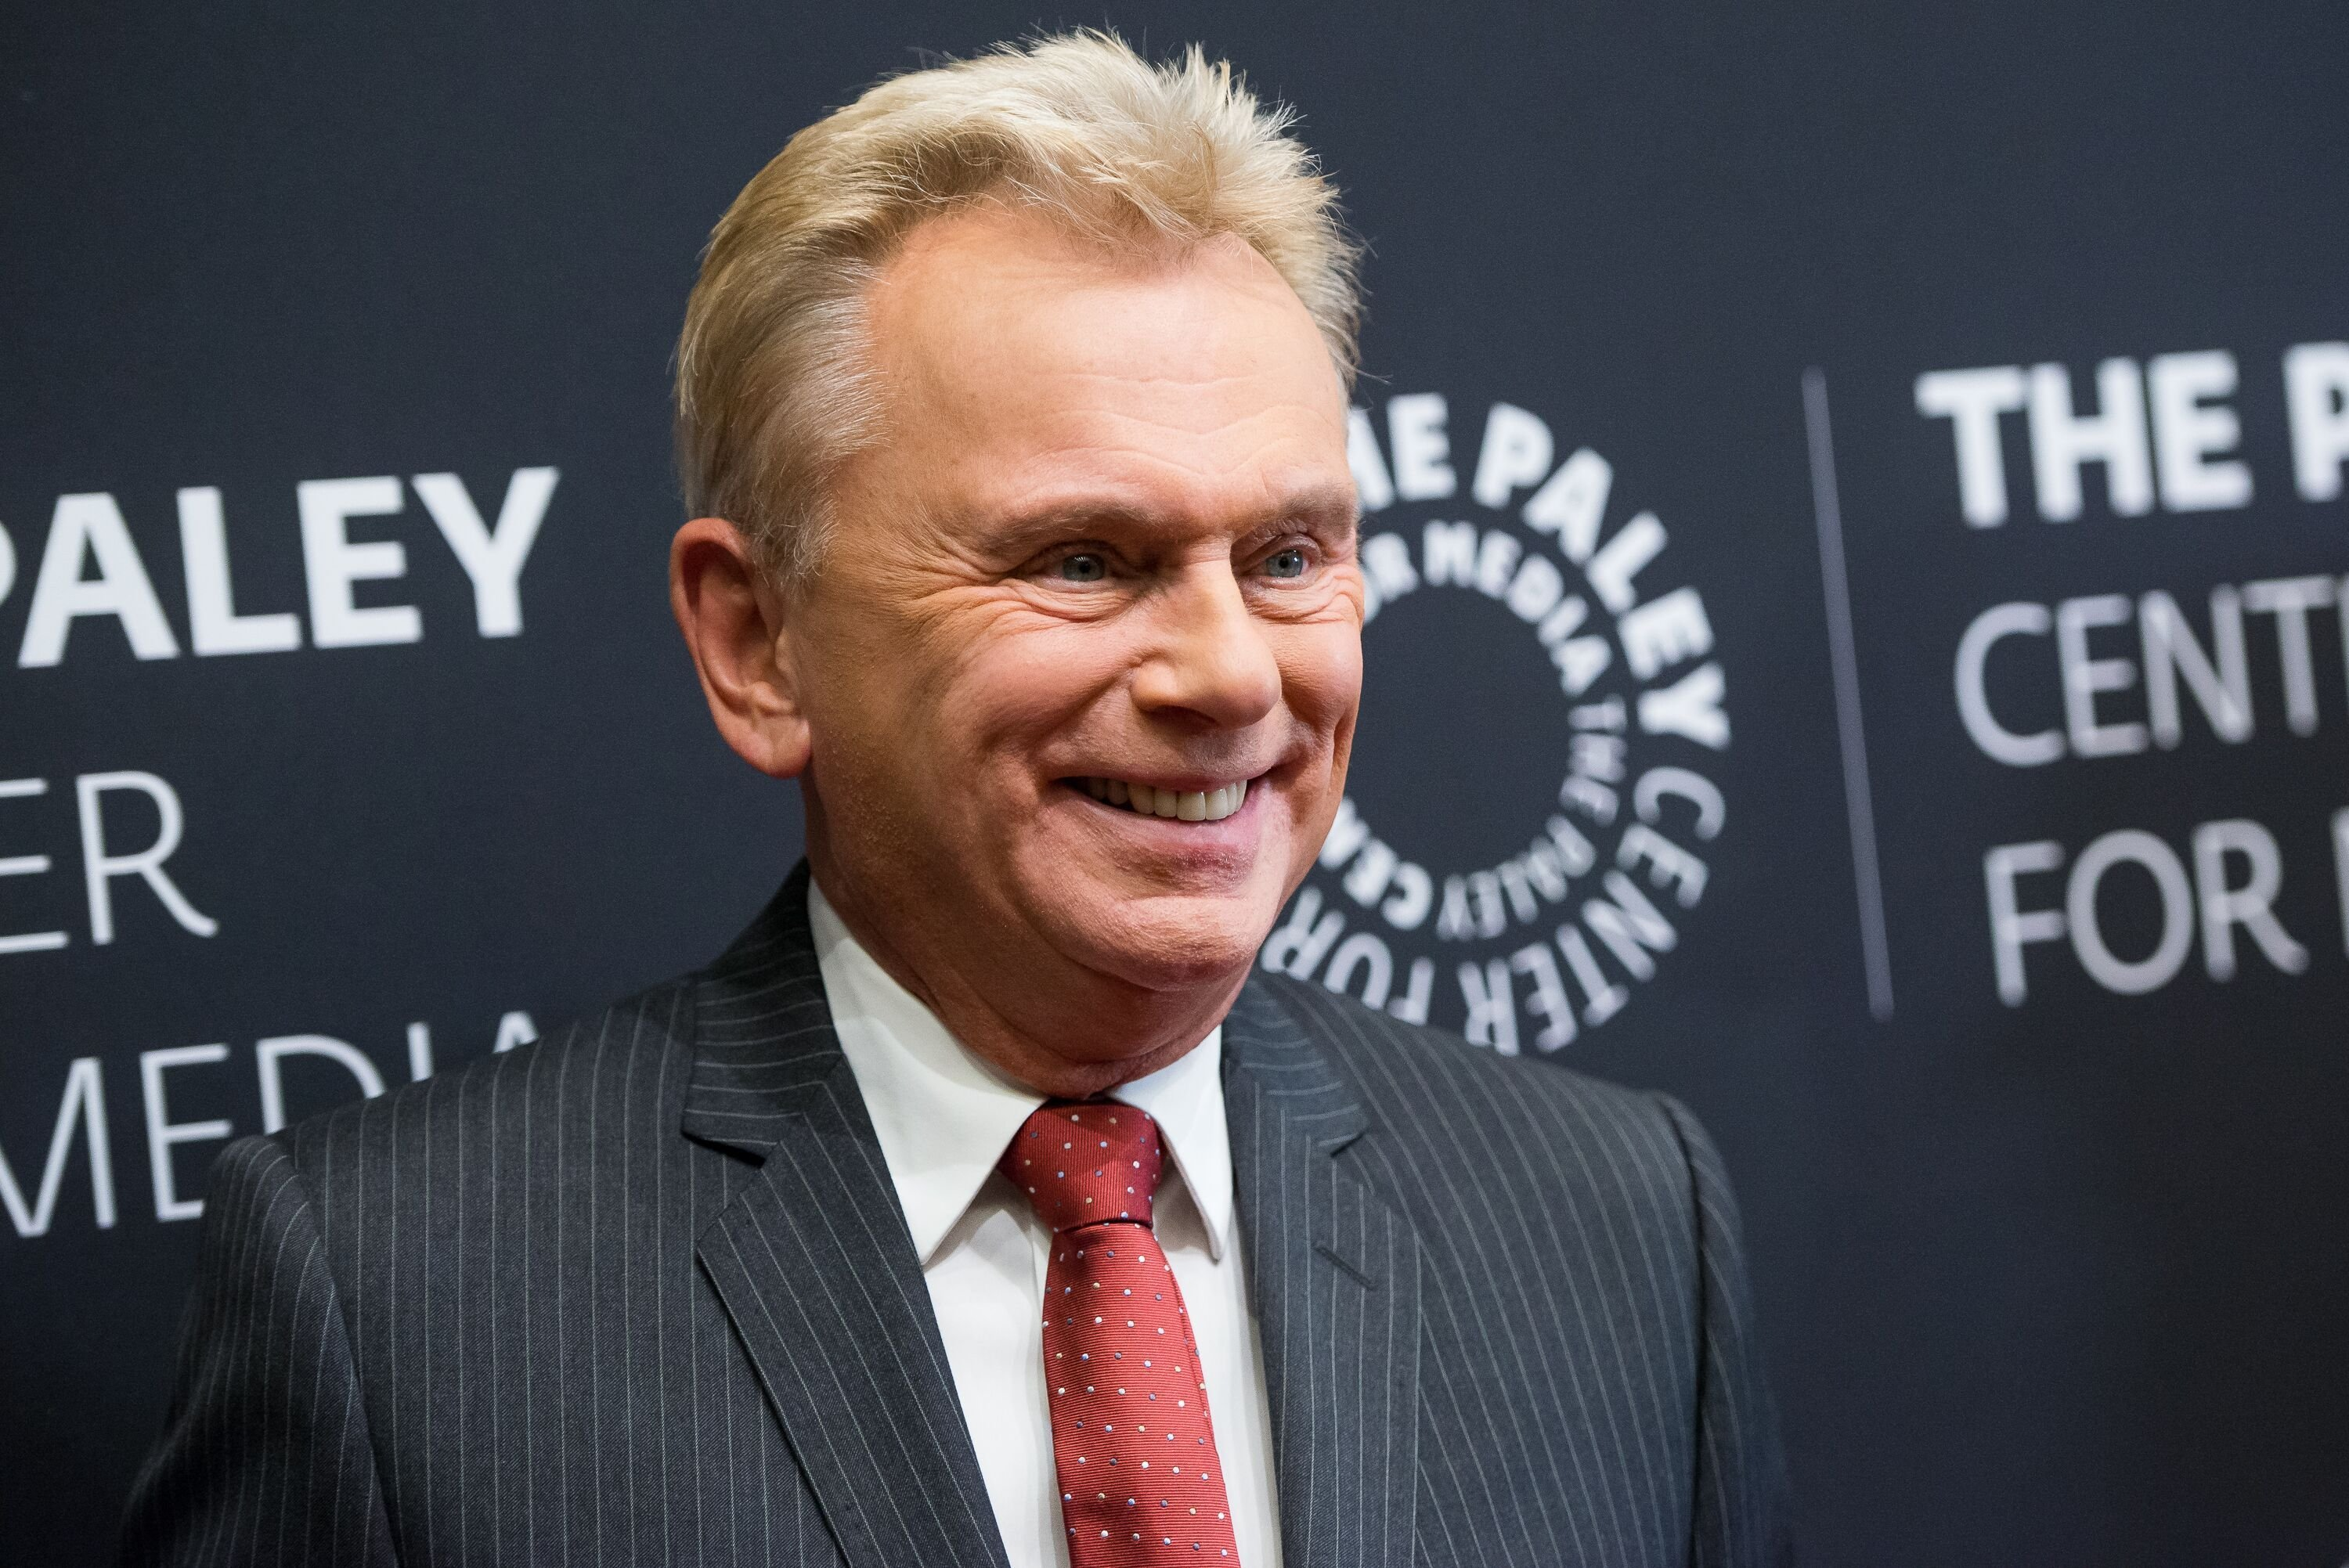 Pat Sajak at The Paley Center For Media Presents: Wheel Of Fortune: 35 Years As America's Game on November 15, 2017, in New York City | Photo: Mike Pont/Getty Images